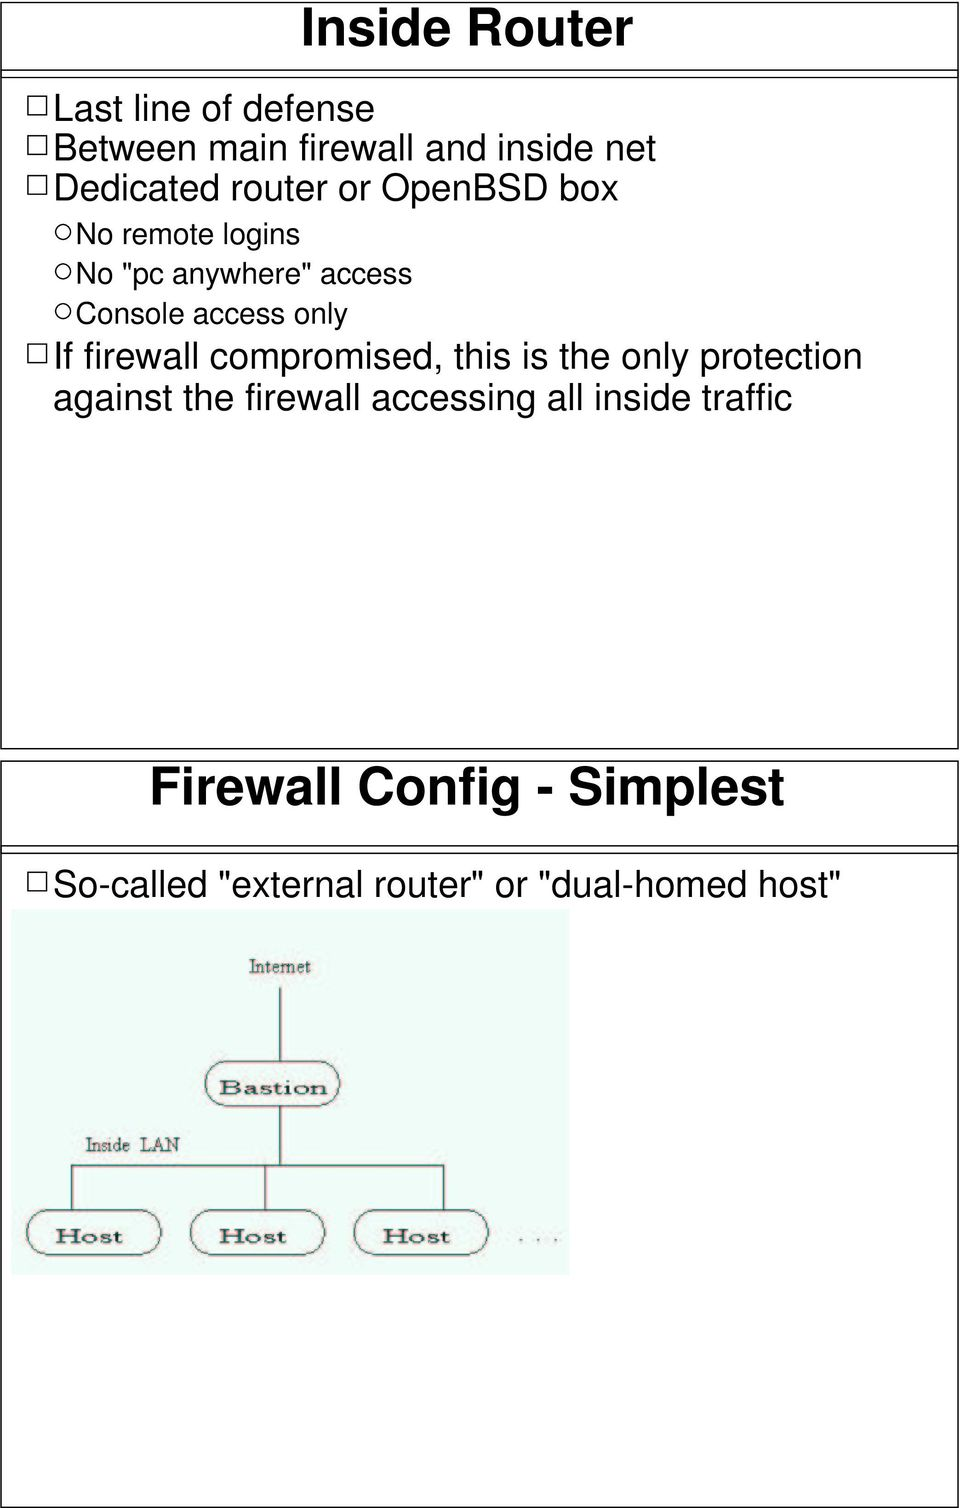 firewall compromised, this is the only protection against the firewall accessing all